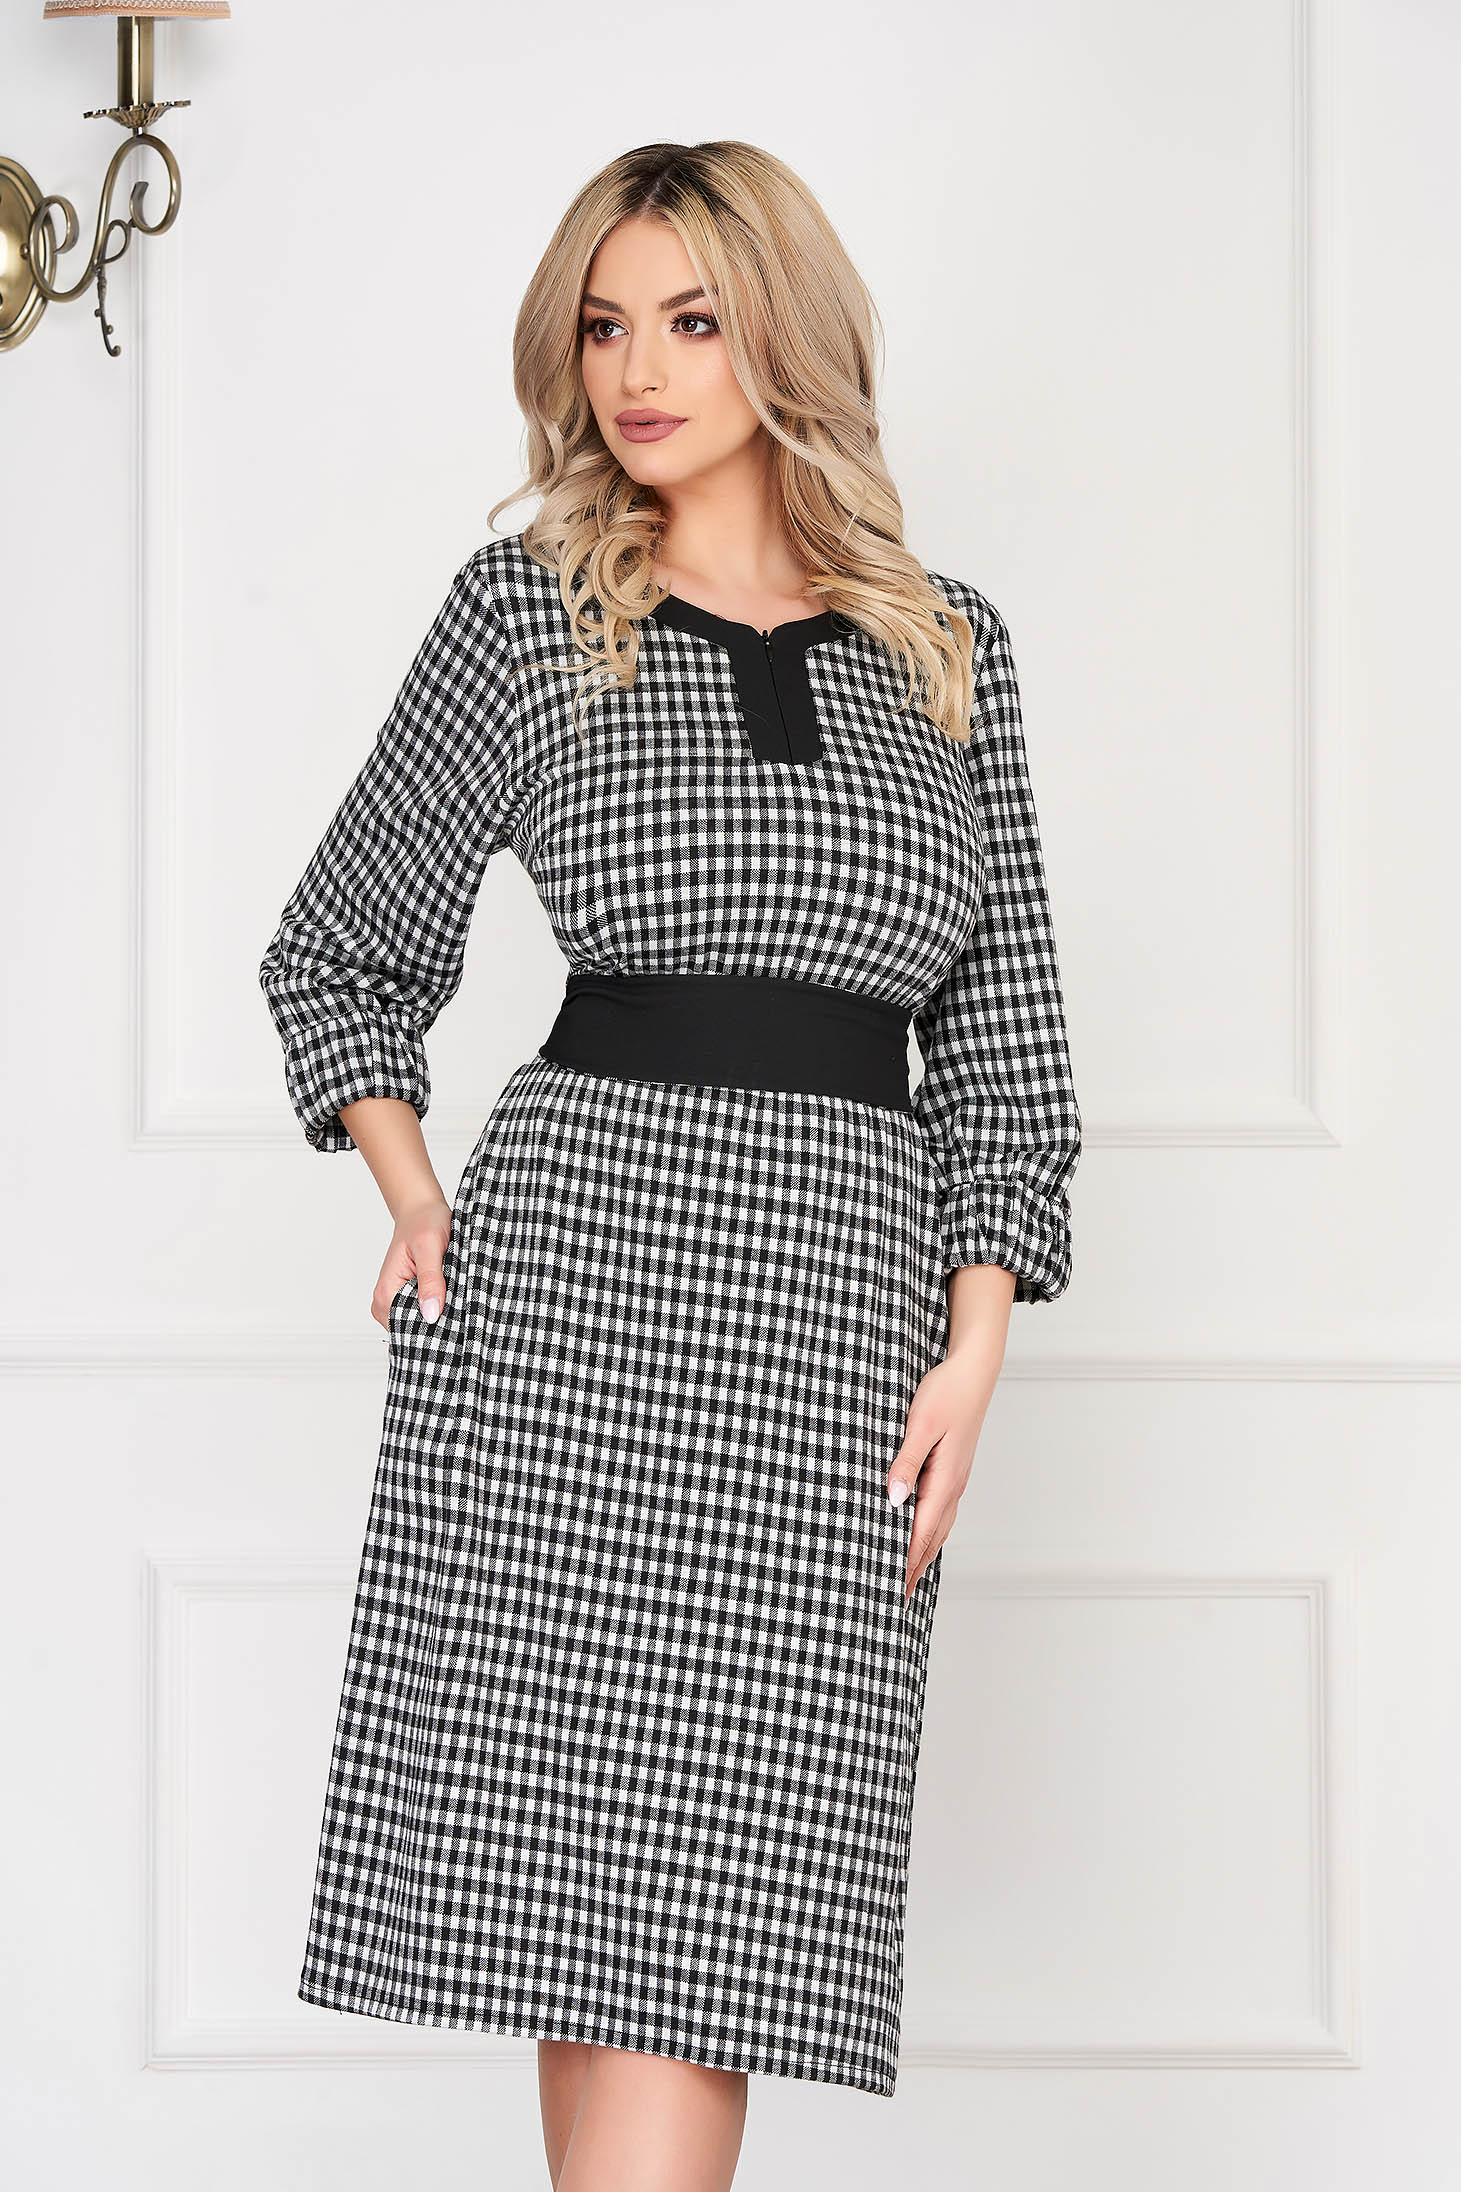 Black dress office midi straight with pockets long sleeved